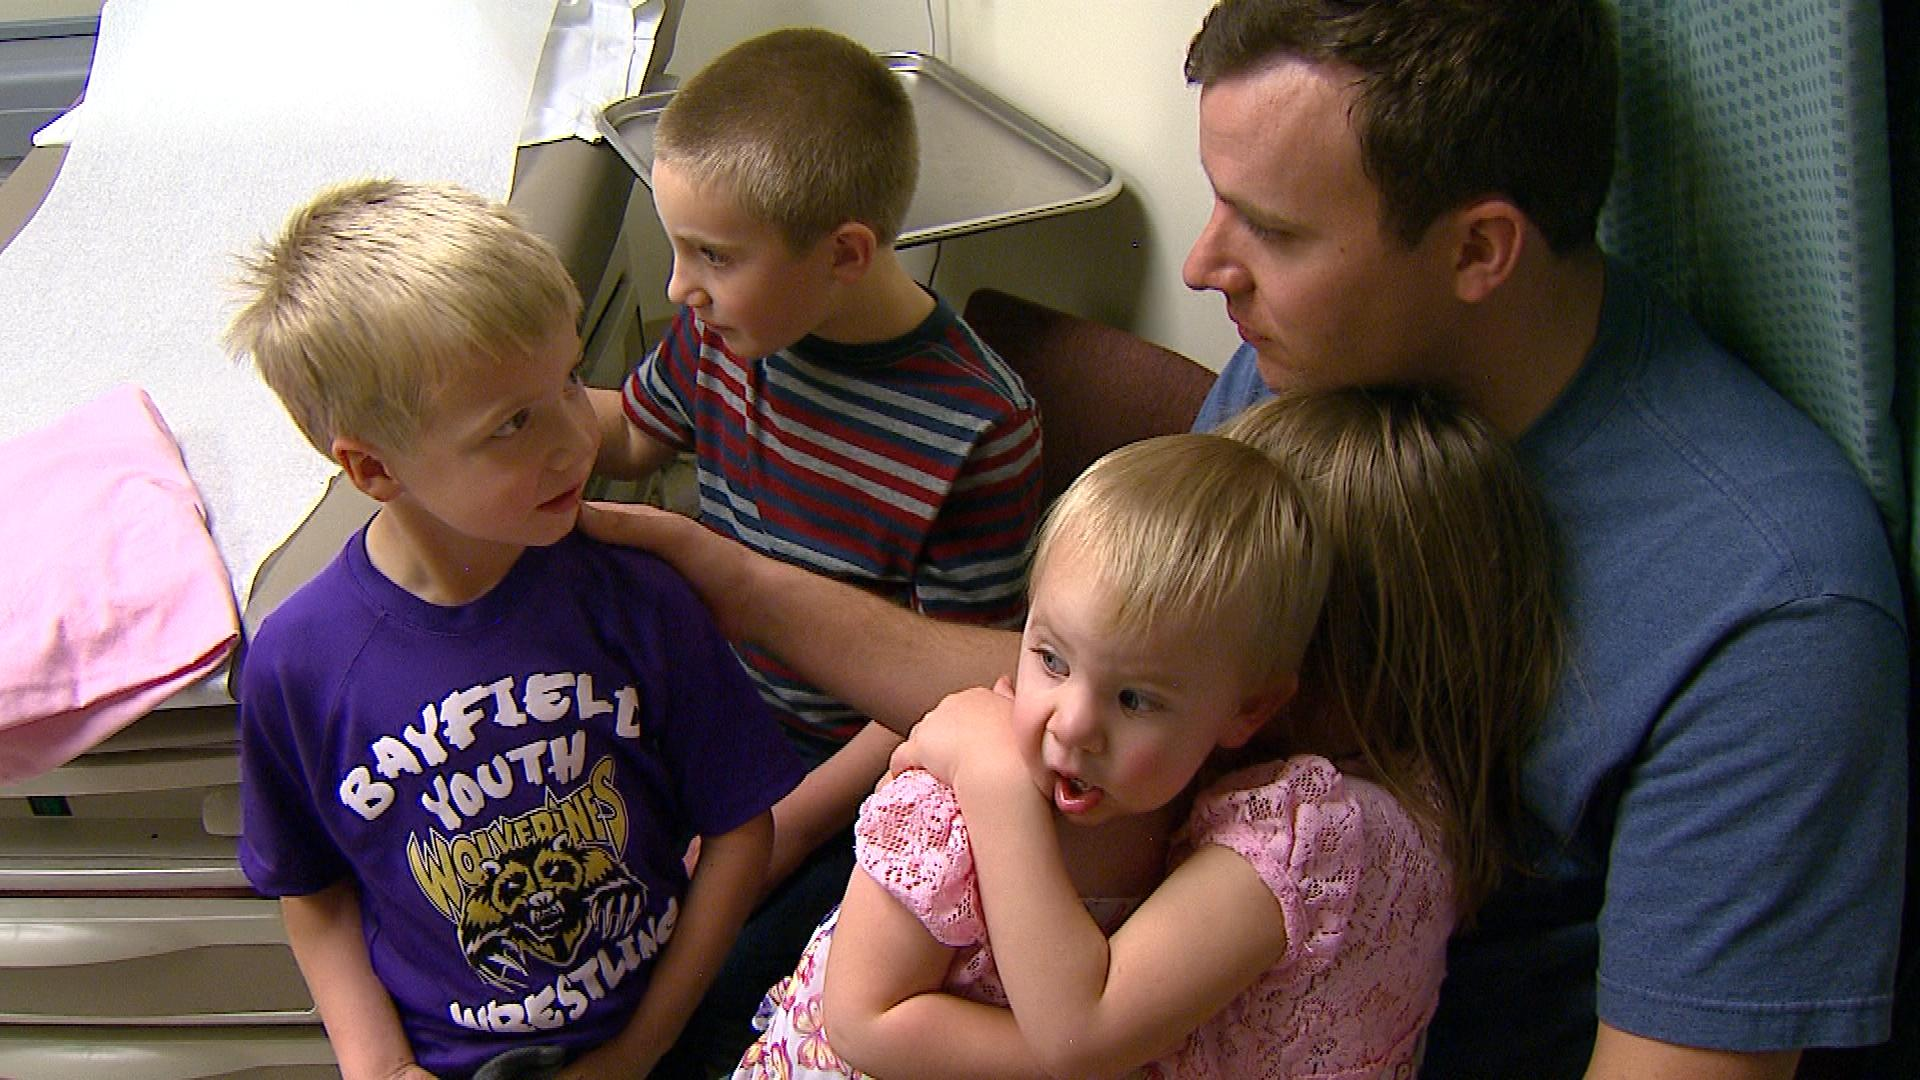 Ben Choate with the kids (credit: CBS)